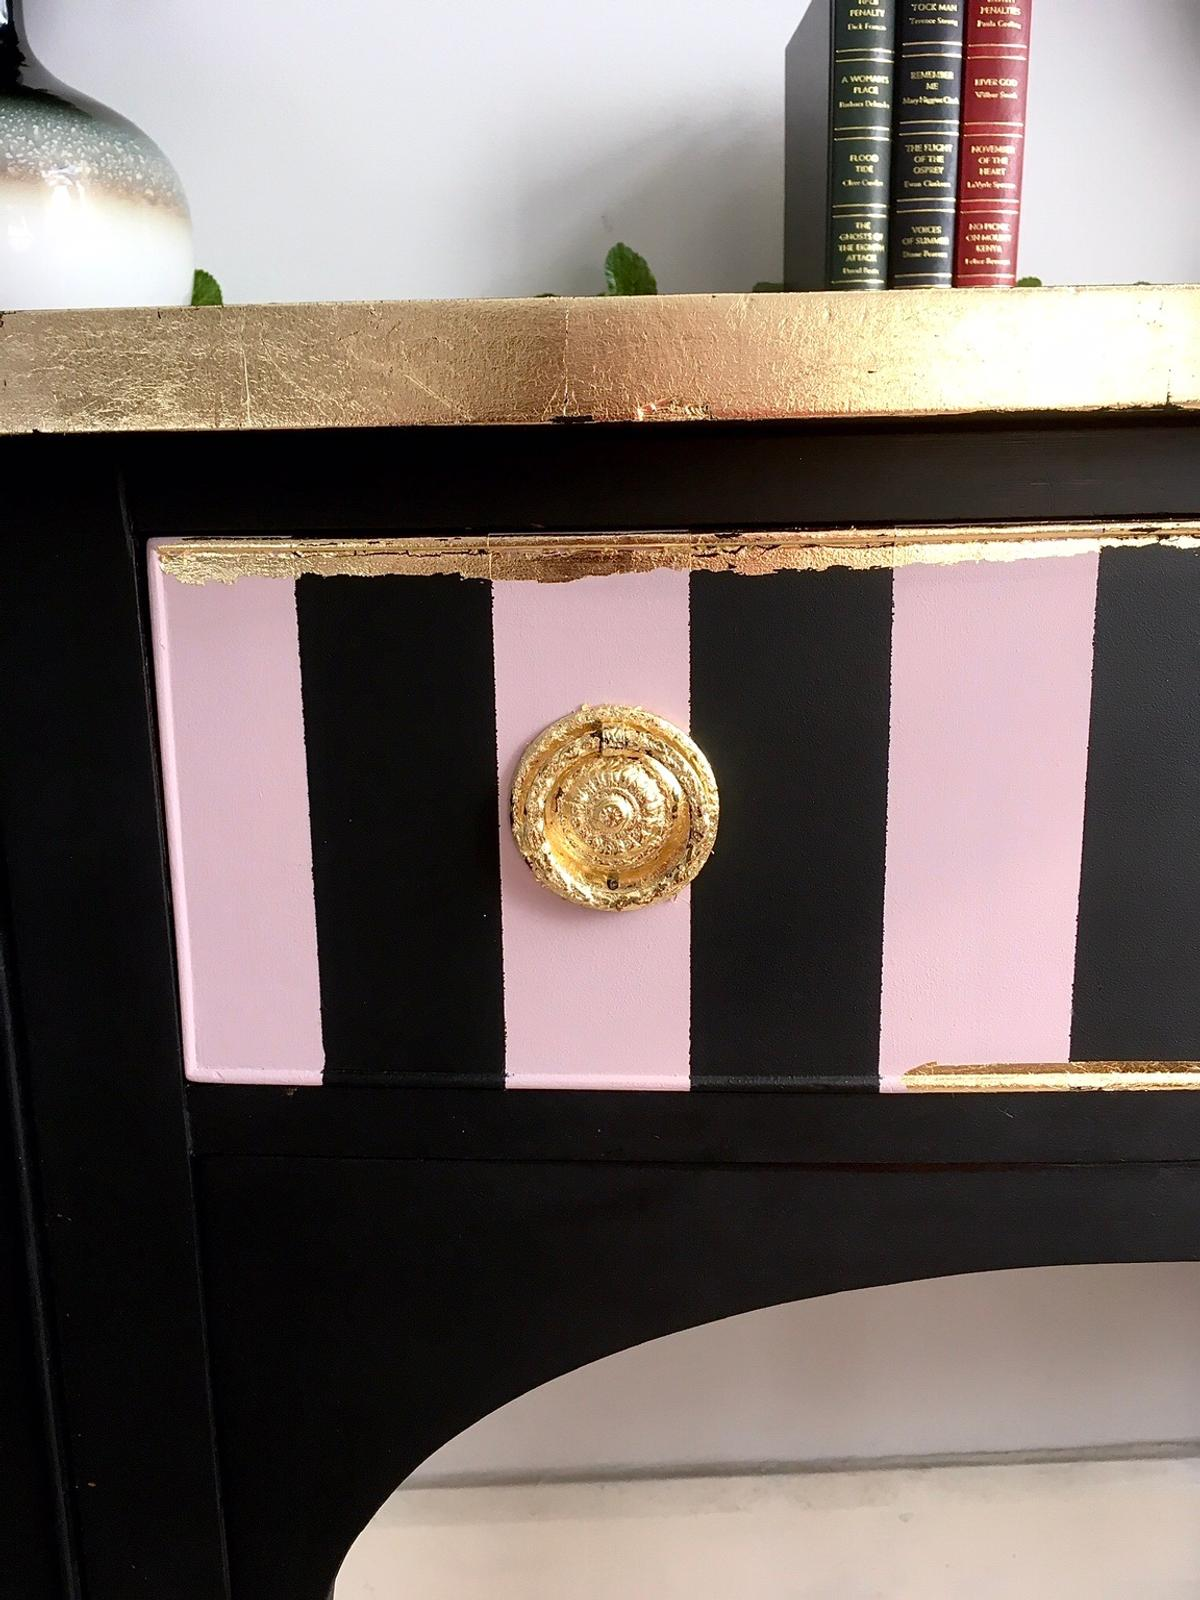 Unique Vintage Hand Painted Sideboard Cabinet Dresser Perfect Condition Lock's and Key working Hand Painted in Pitch black Annabell Duke Mineral Paint and finished with metallic gold leaf .  Measurements : Width 144 cm Depth outside 58 cm Height 92 cm  Very good , solid, clean condition . Local Delivery avaliable for little charge. Cash on collection.  Courier charge might change depends of your postcode. Please contact with me before final decision.  Collect from KT3 3EB .